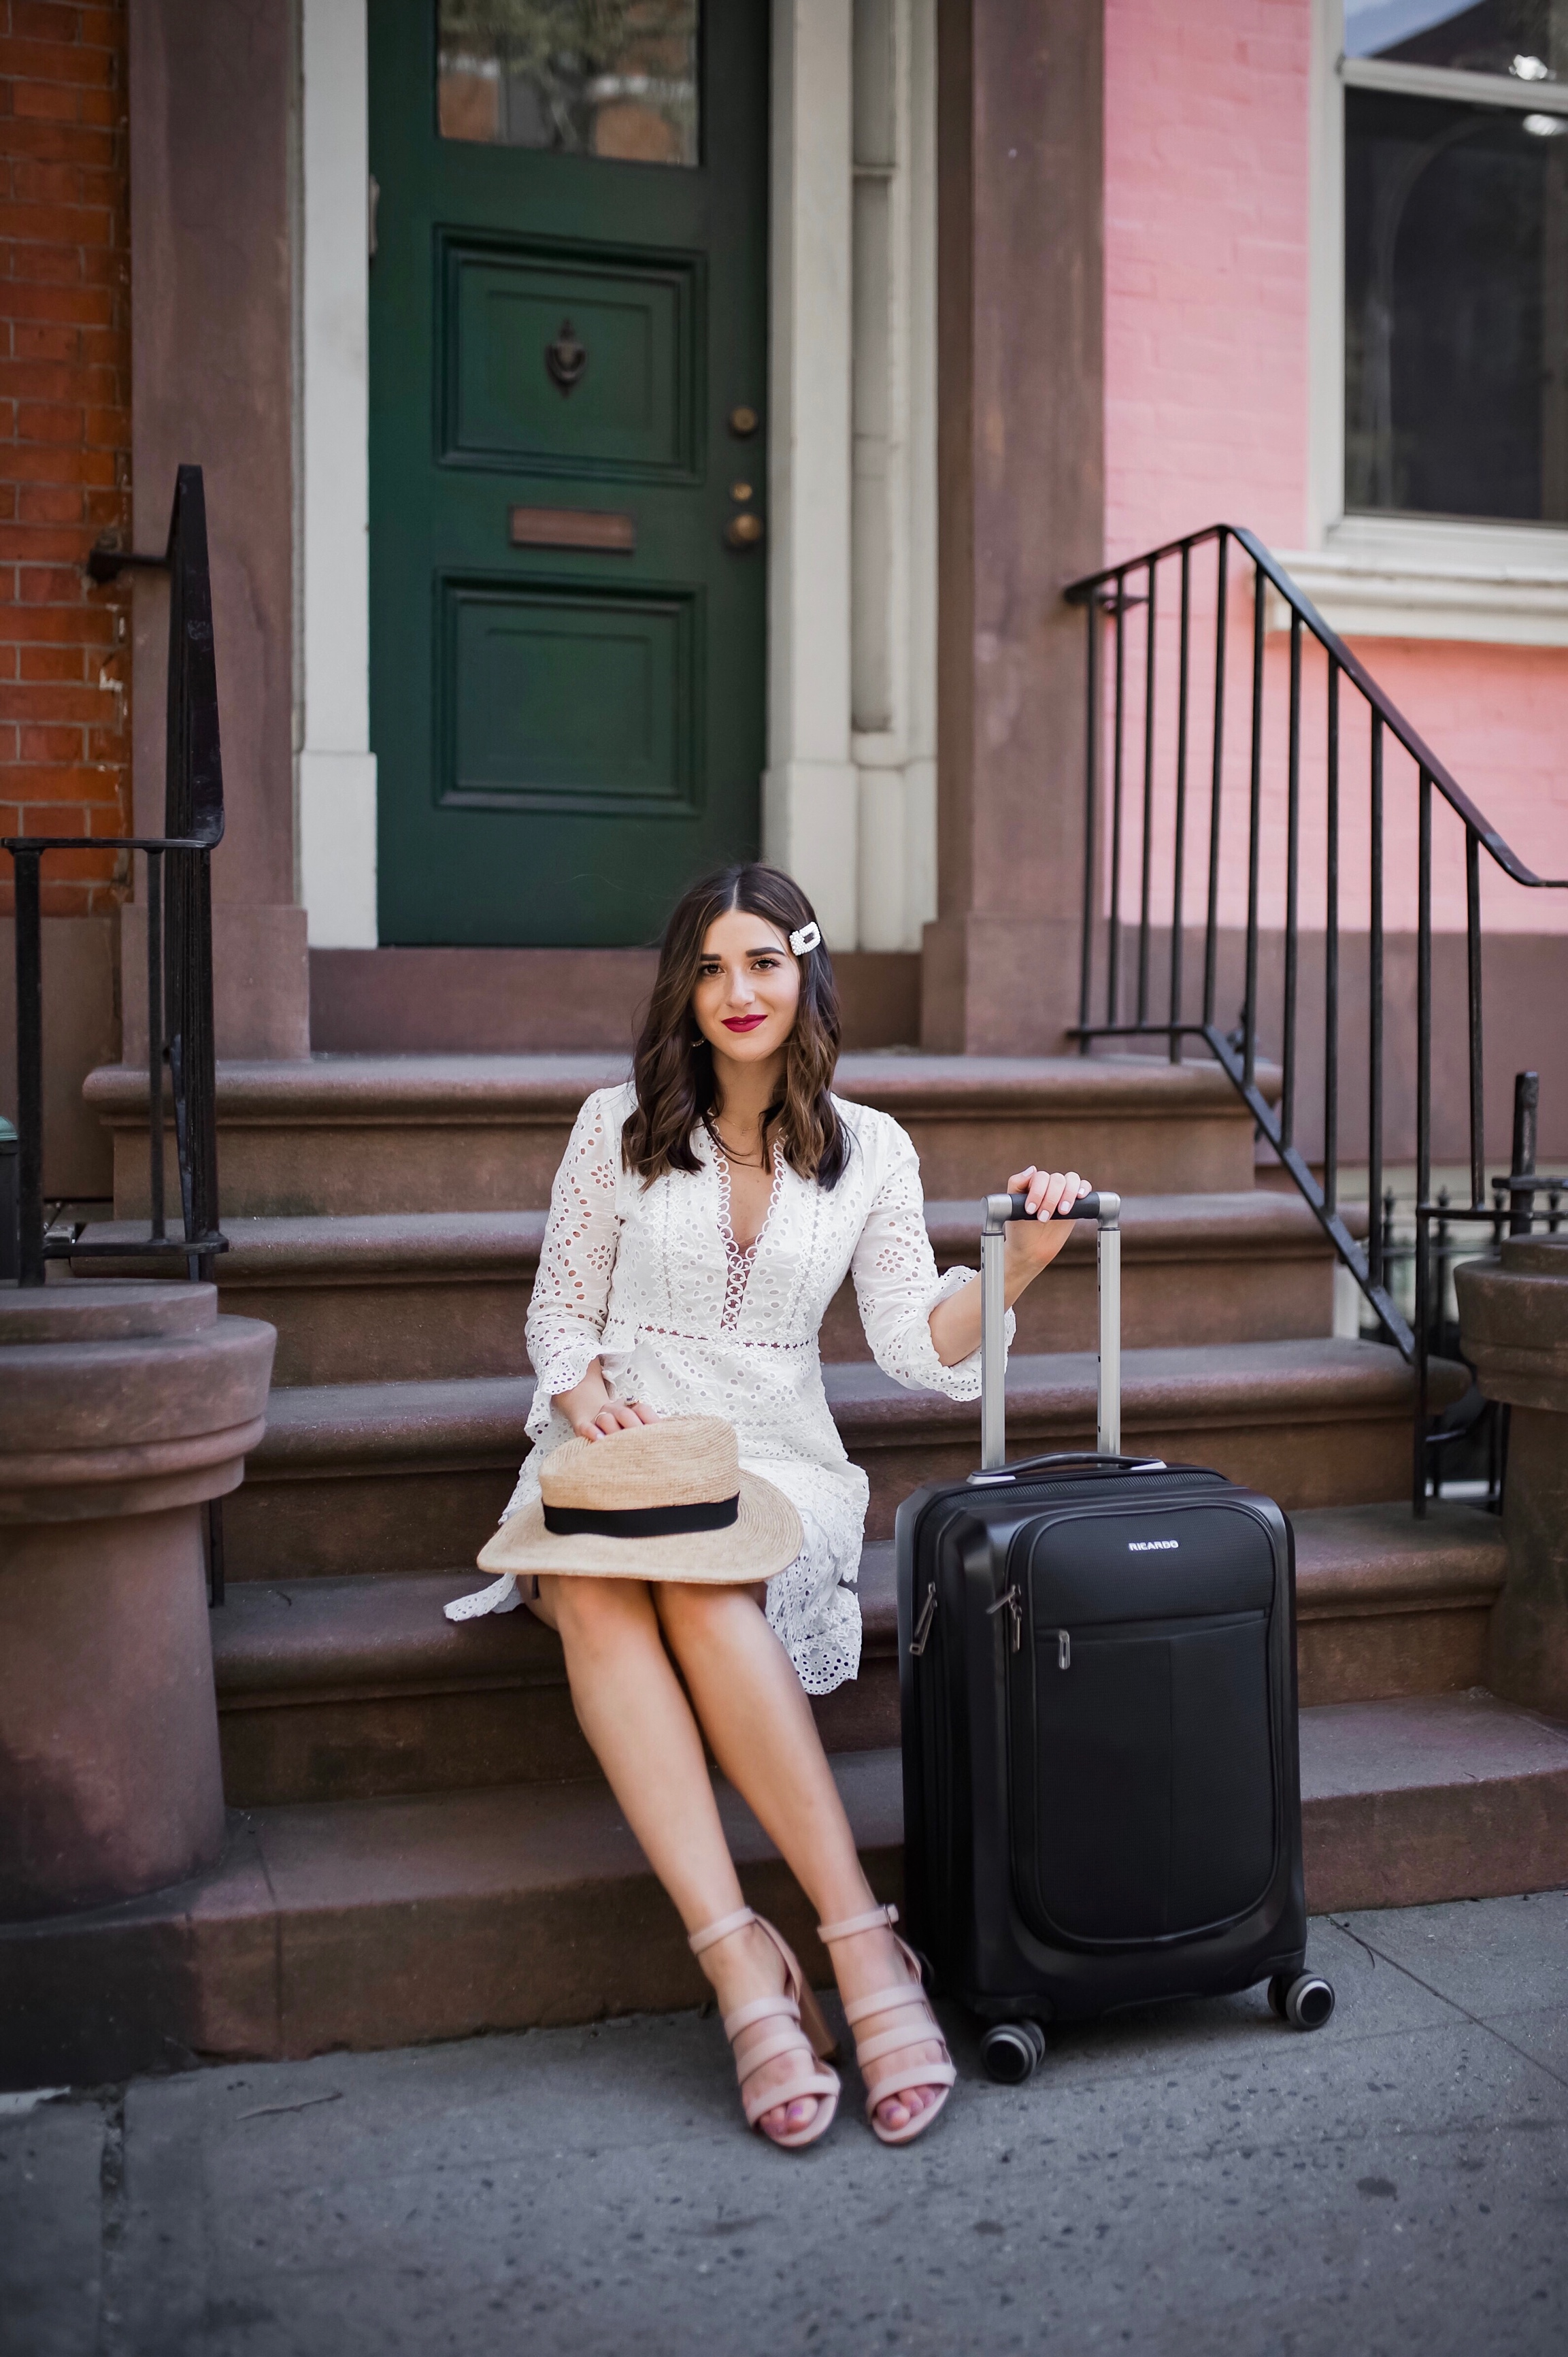 How Ricardo Luggage Keeps Me Organized The Cupertino Collection Esther Santer Fashion Blog NYC Street Style Blogger Outfit OOTD Trendy Shopping Girl Travel Honeymoon Trip Vacation Europe Pack Packing USB Black Front Pocket Hard Case Carry On Suitcase.JPG